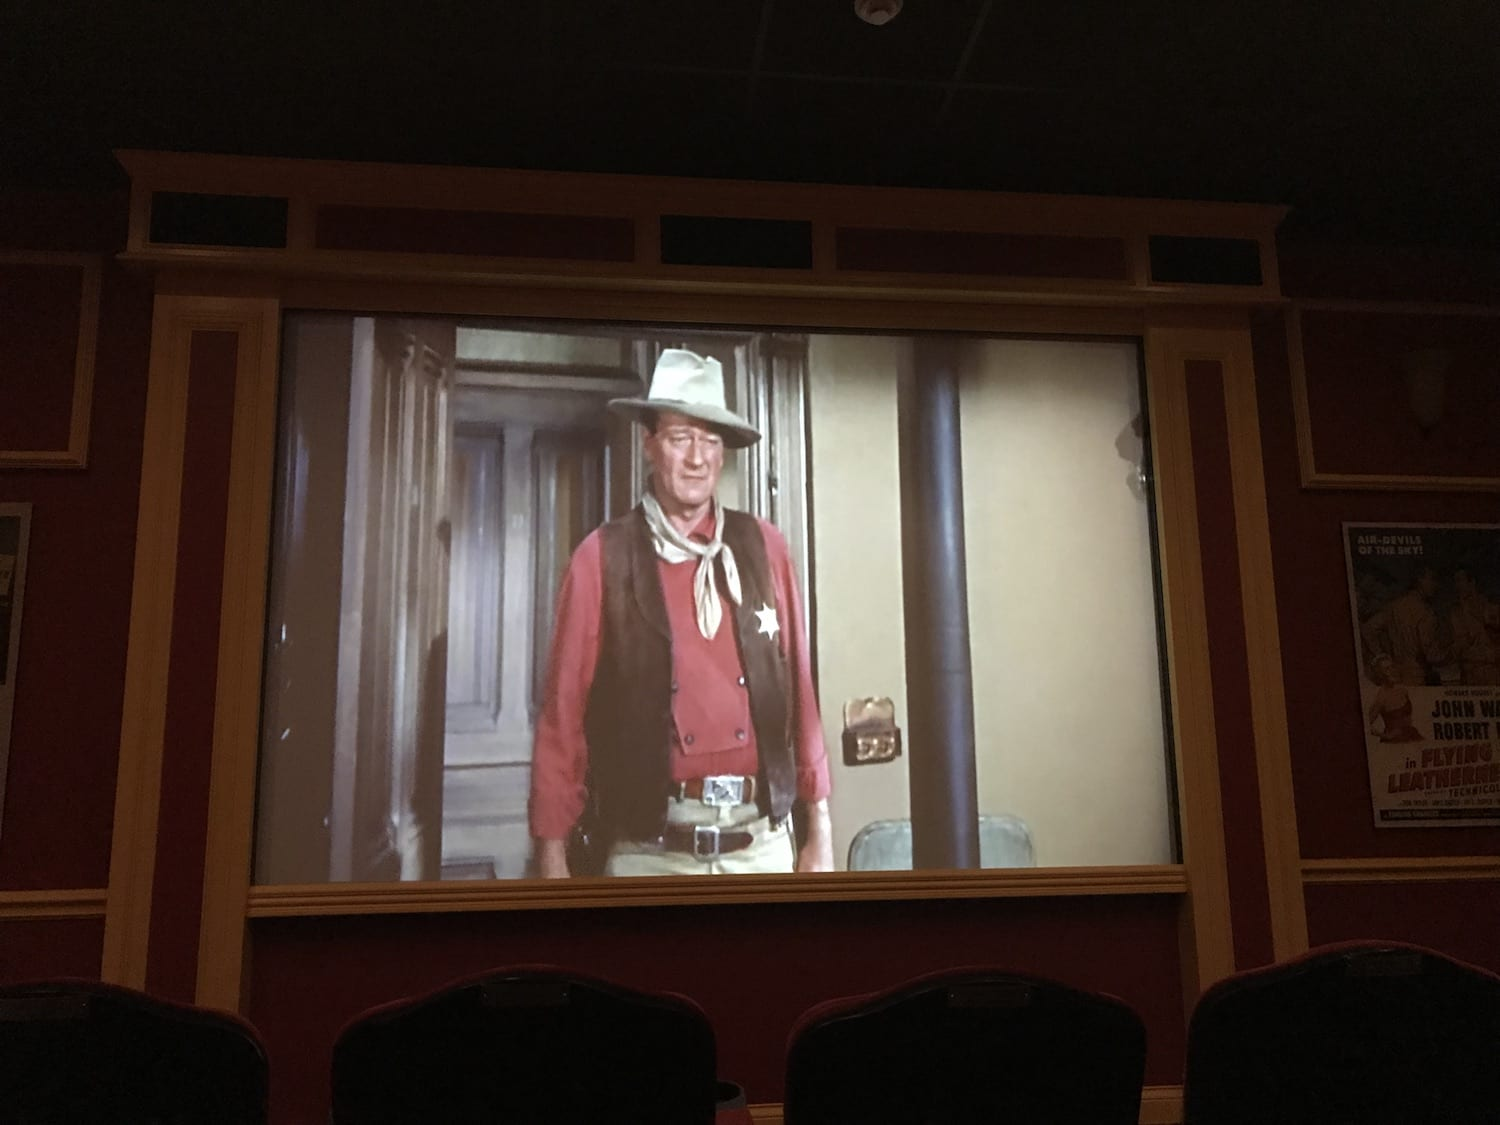 Movie Theater inside John Wayne Birthplace Museum Winterset Iowa